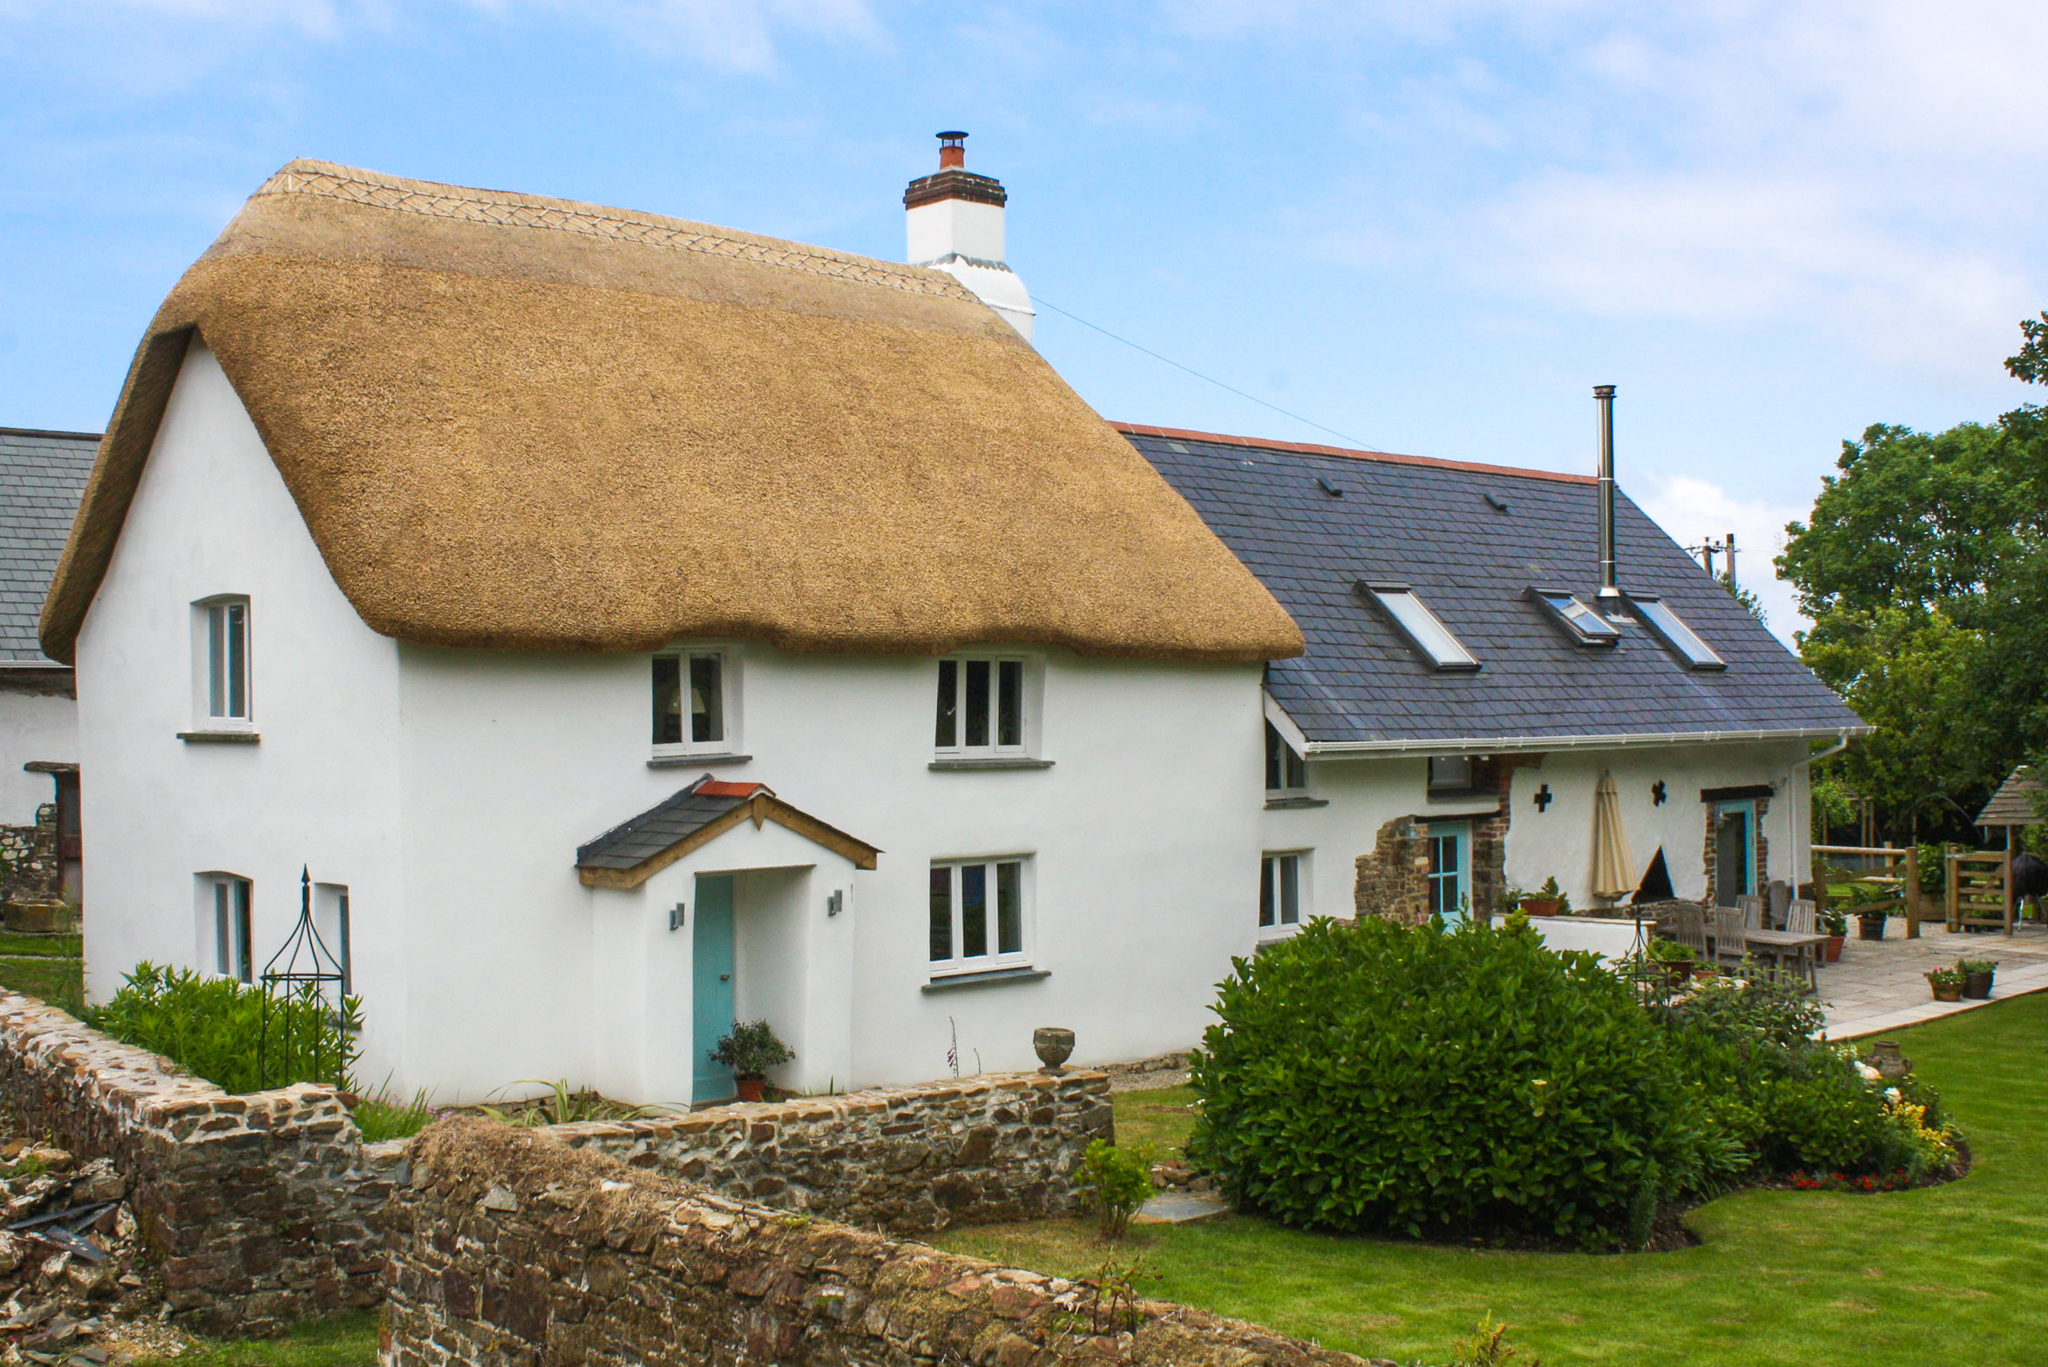 Nice clean thatch